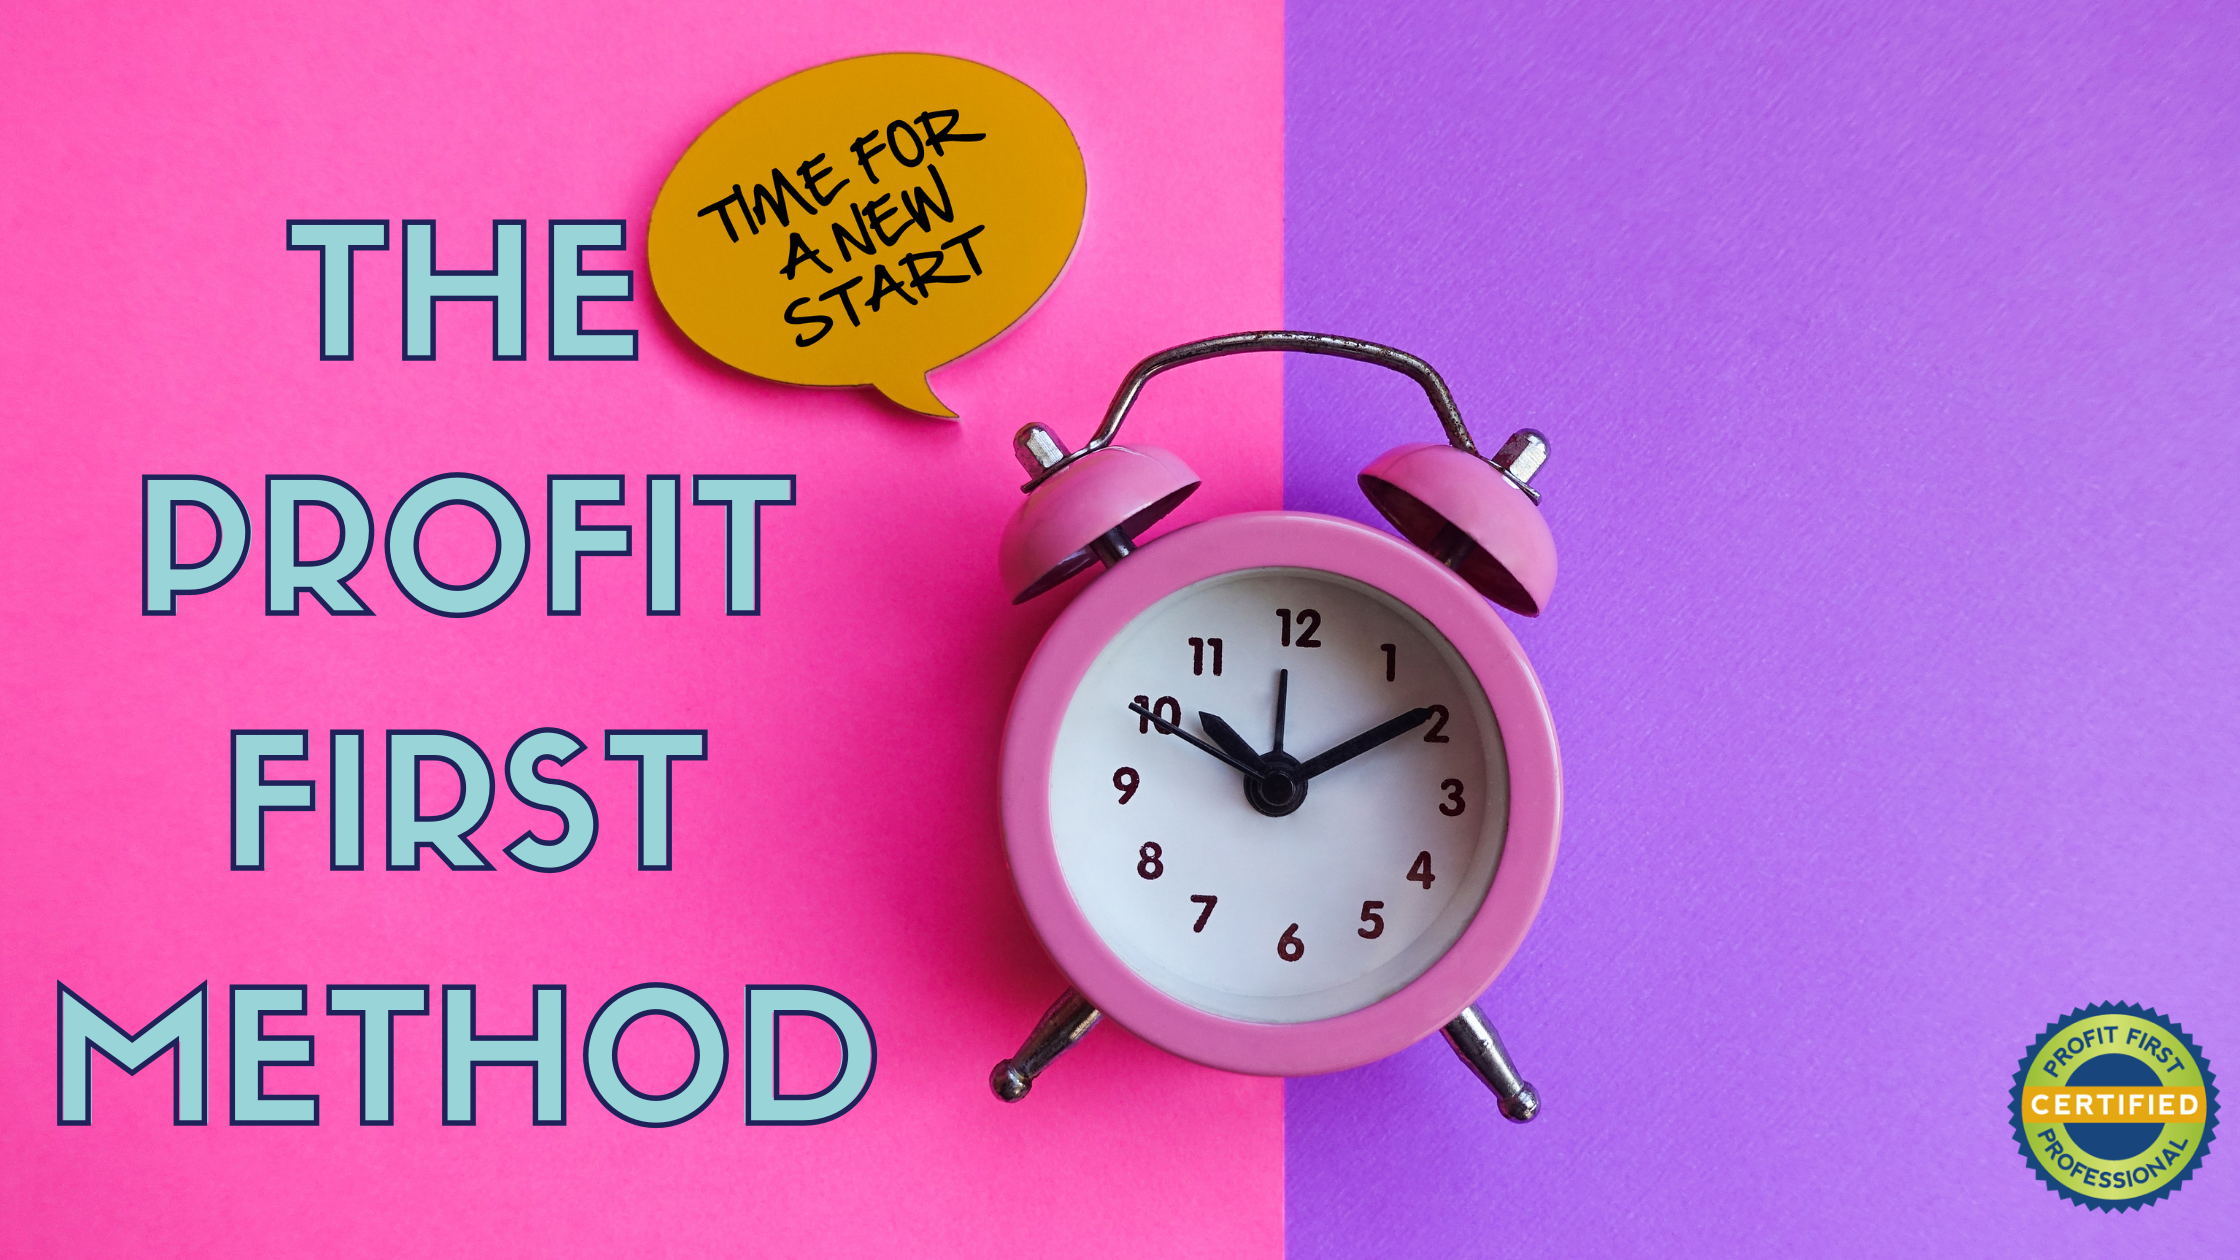 An introduction to the Profit First method 💰